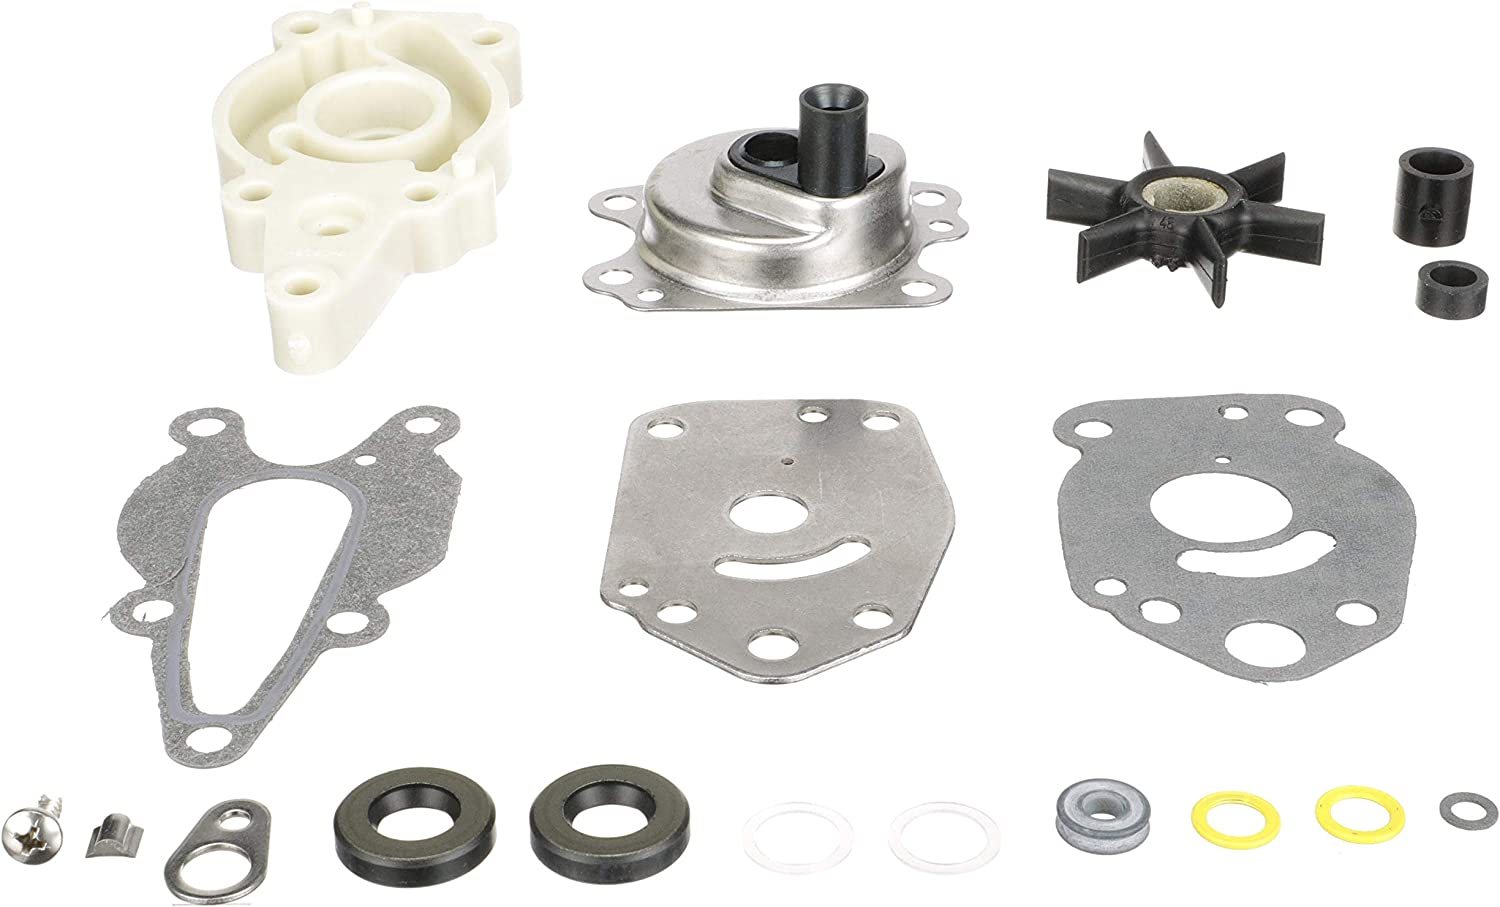 Quicksilver Water Pump Repair Kit 42089A5 - Outboards - for Mercury or Mariner 6 HP Through 15 HP, 4-Stroke Outboards